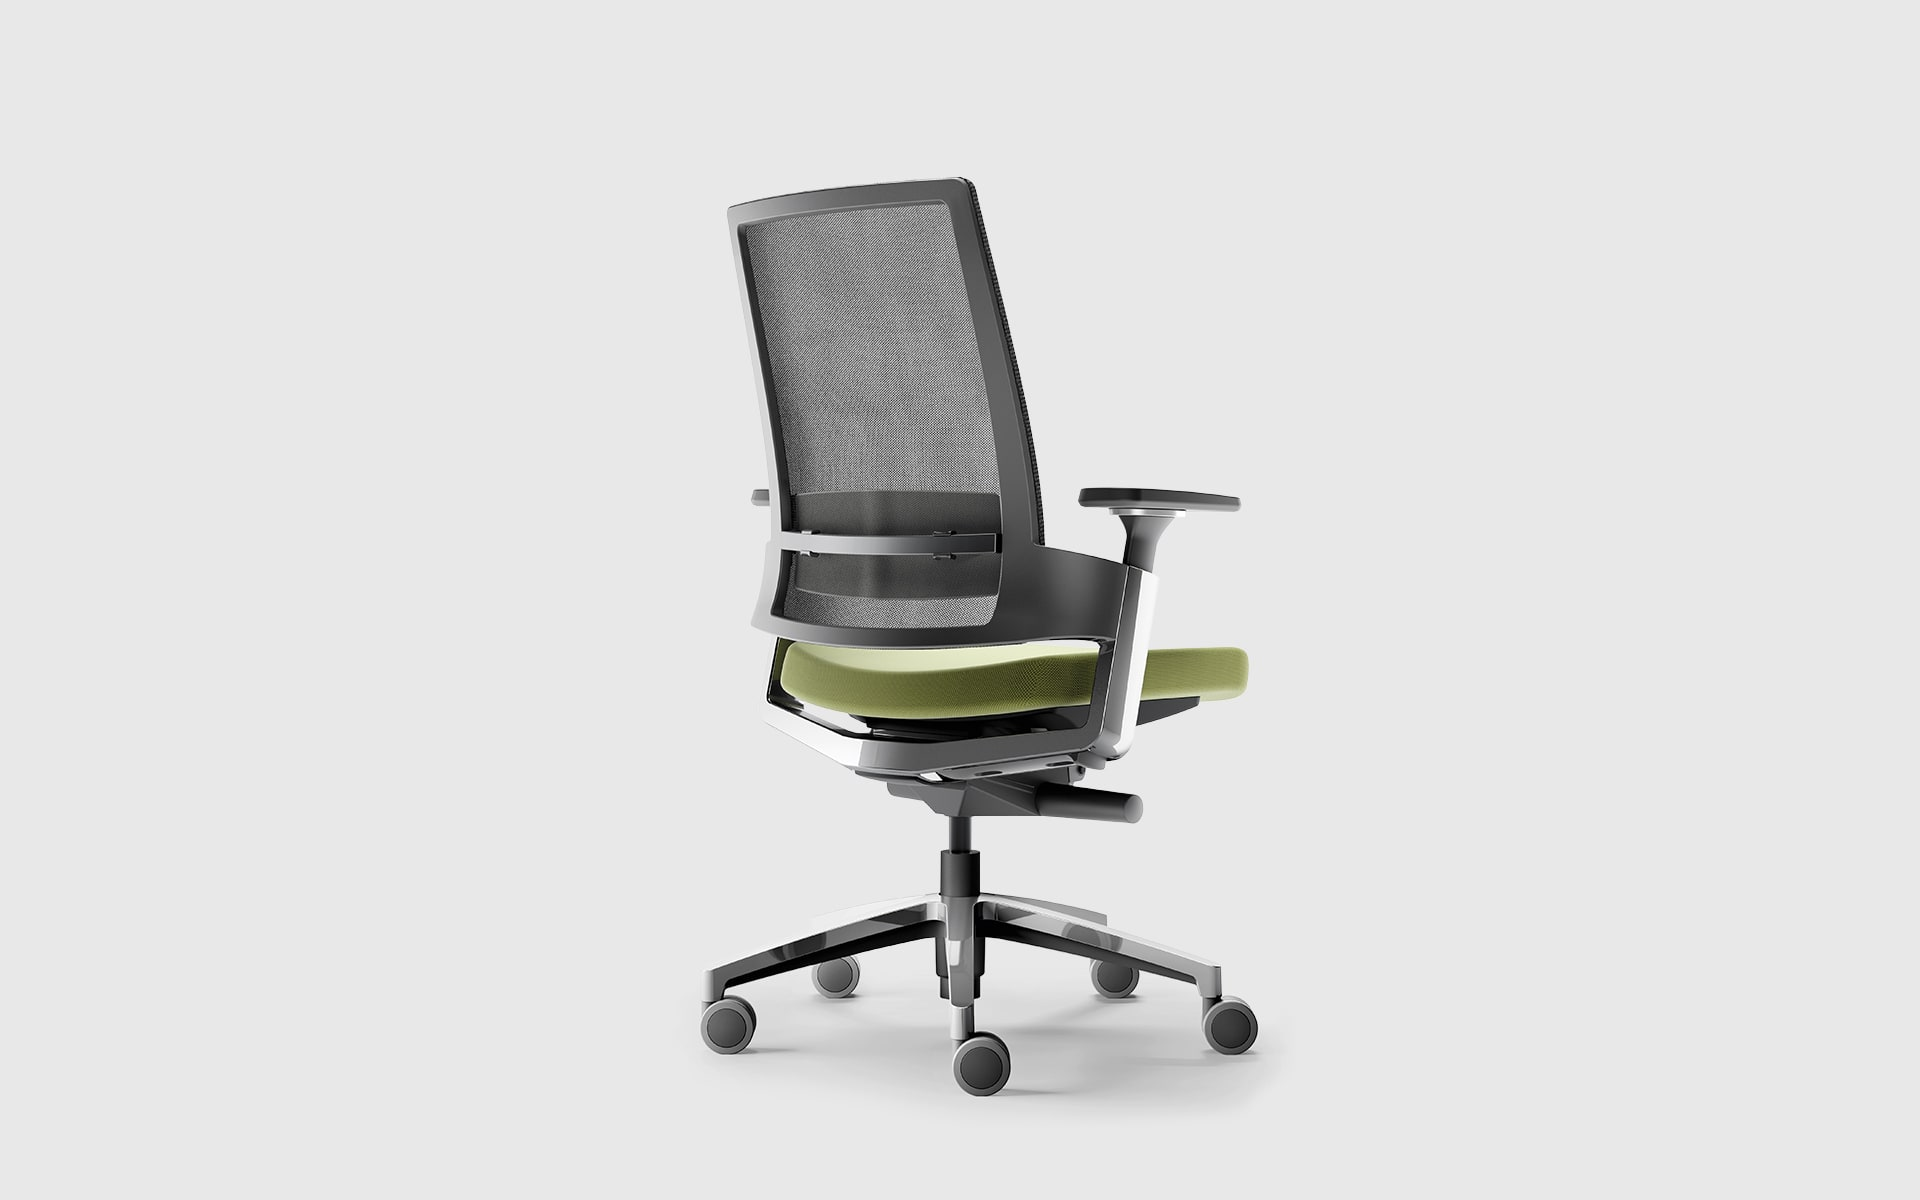 Forma 5 3.60 office chair by ITO Design with ergonomic gray backrest and green upholstery